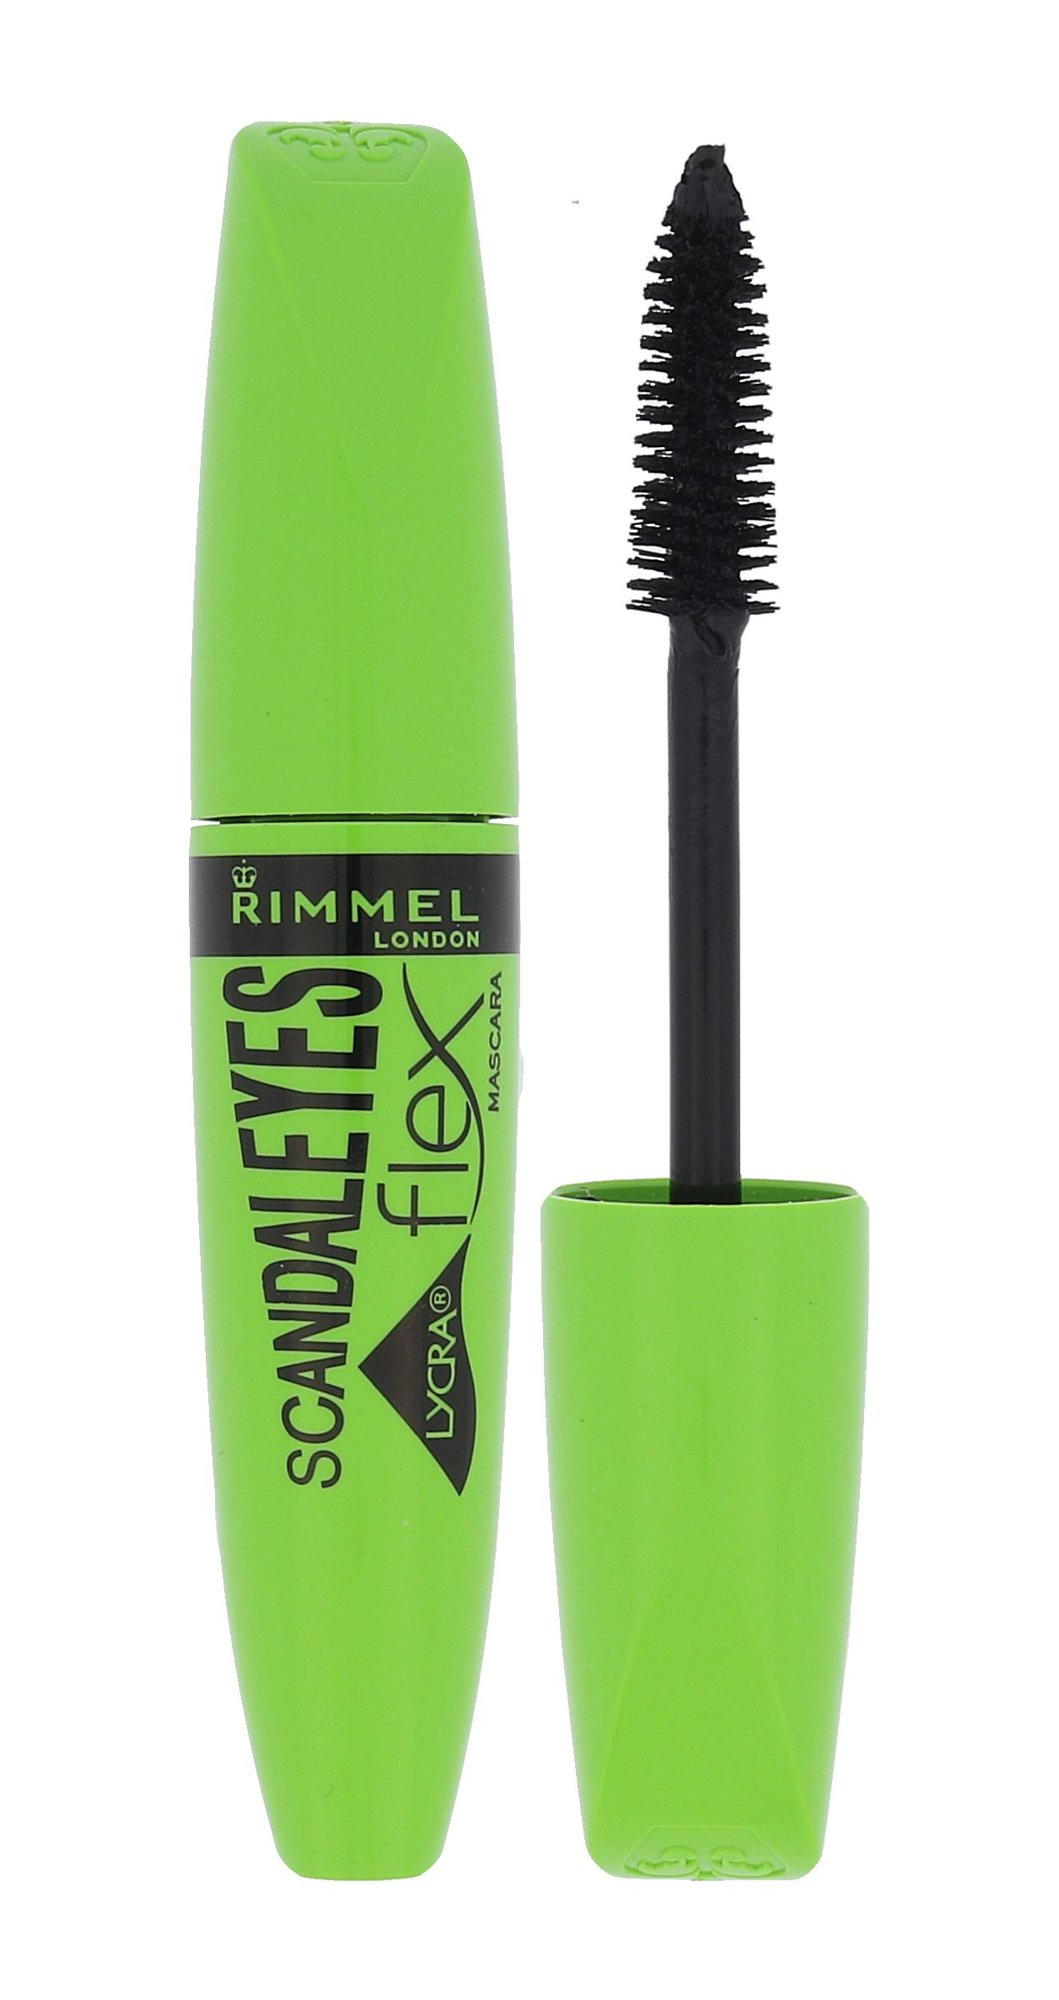 Rimmel London Scandal Eyes Lycra Flex Cosmetic 12ml 001 Black